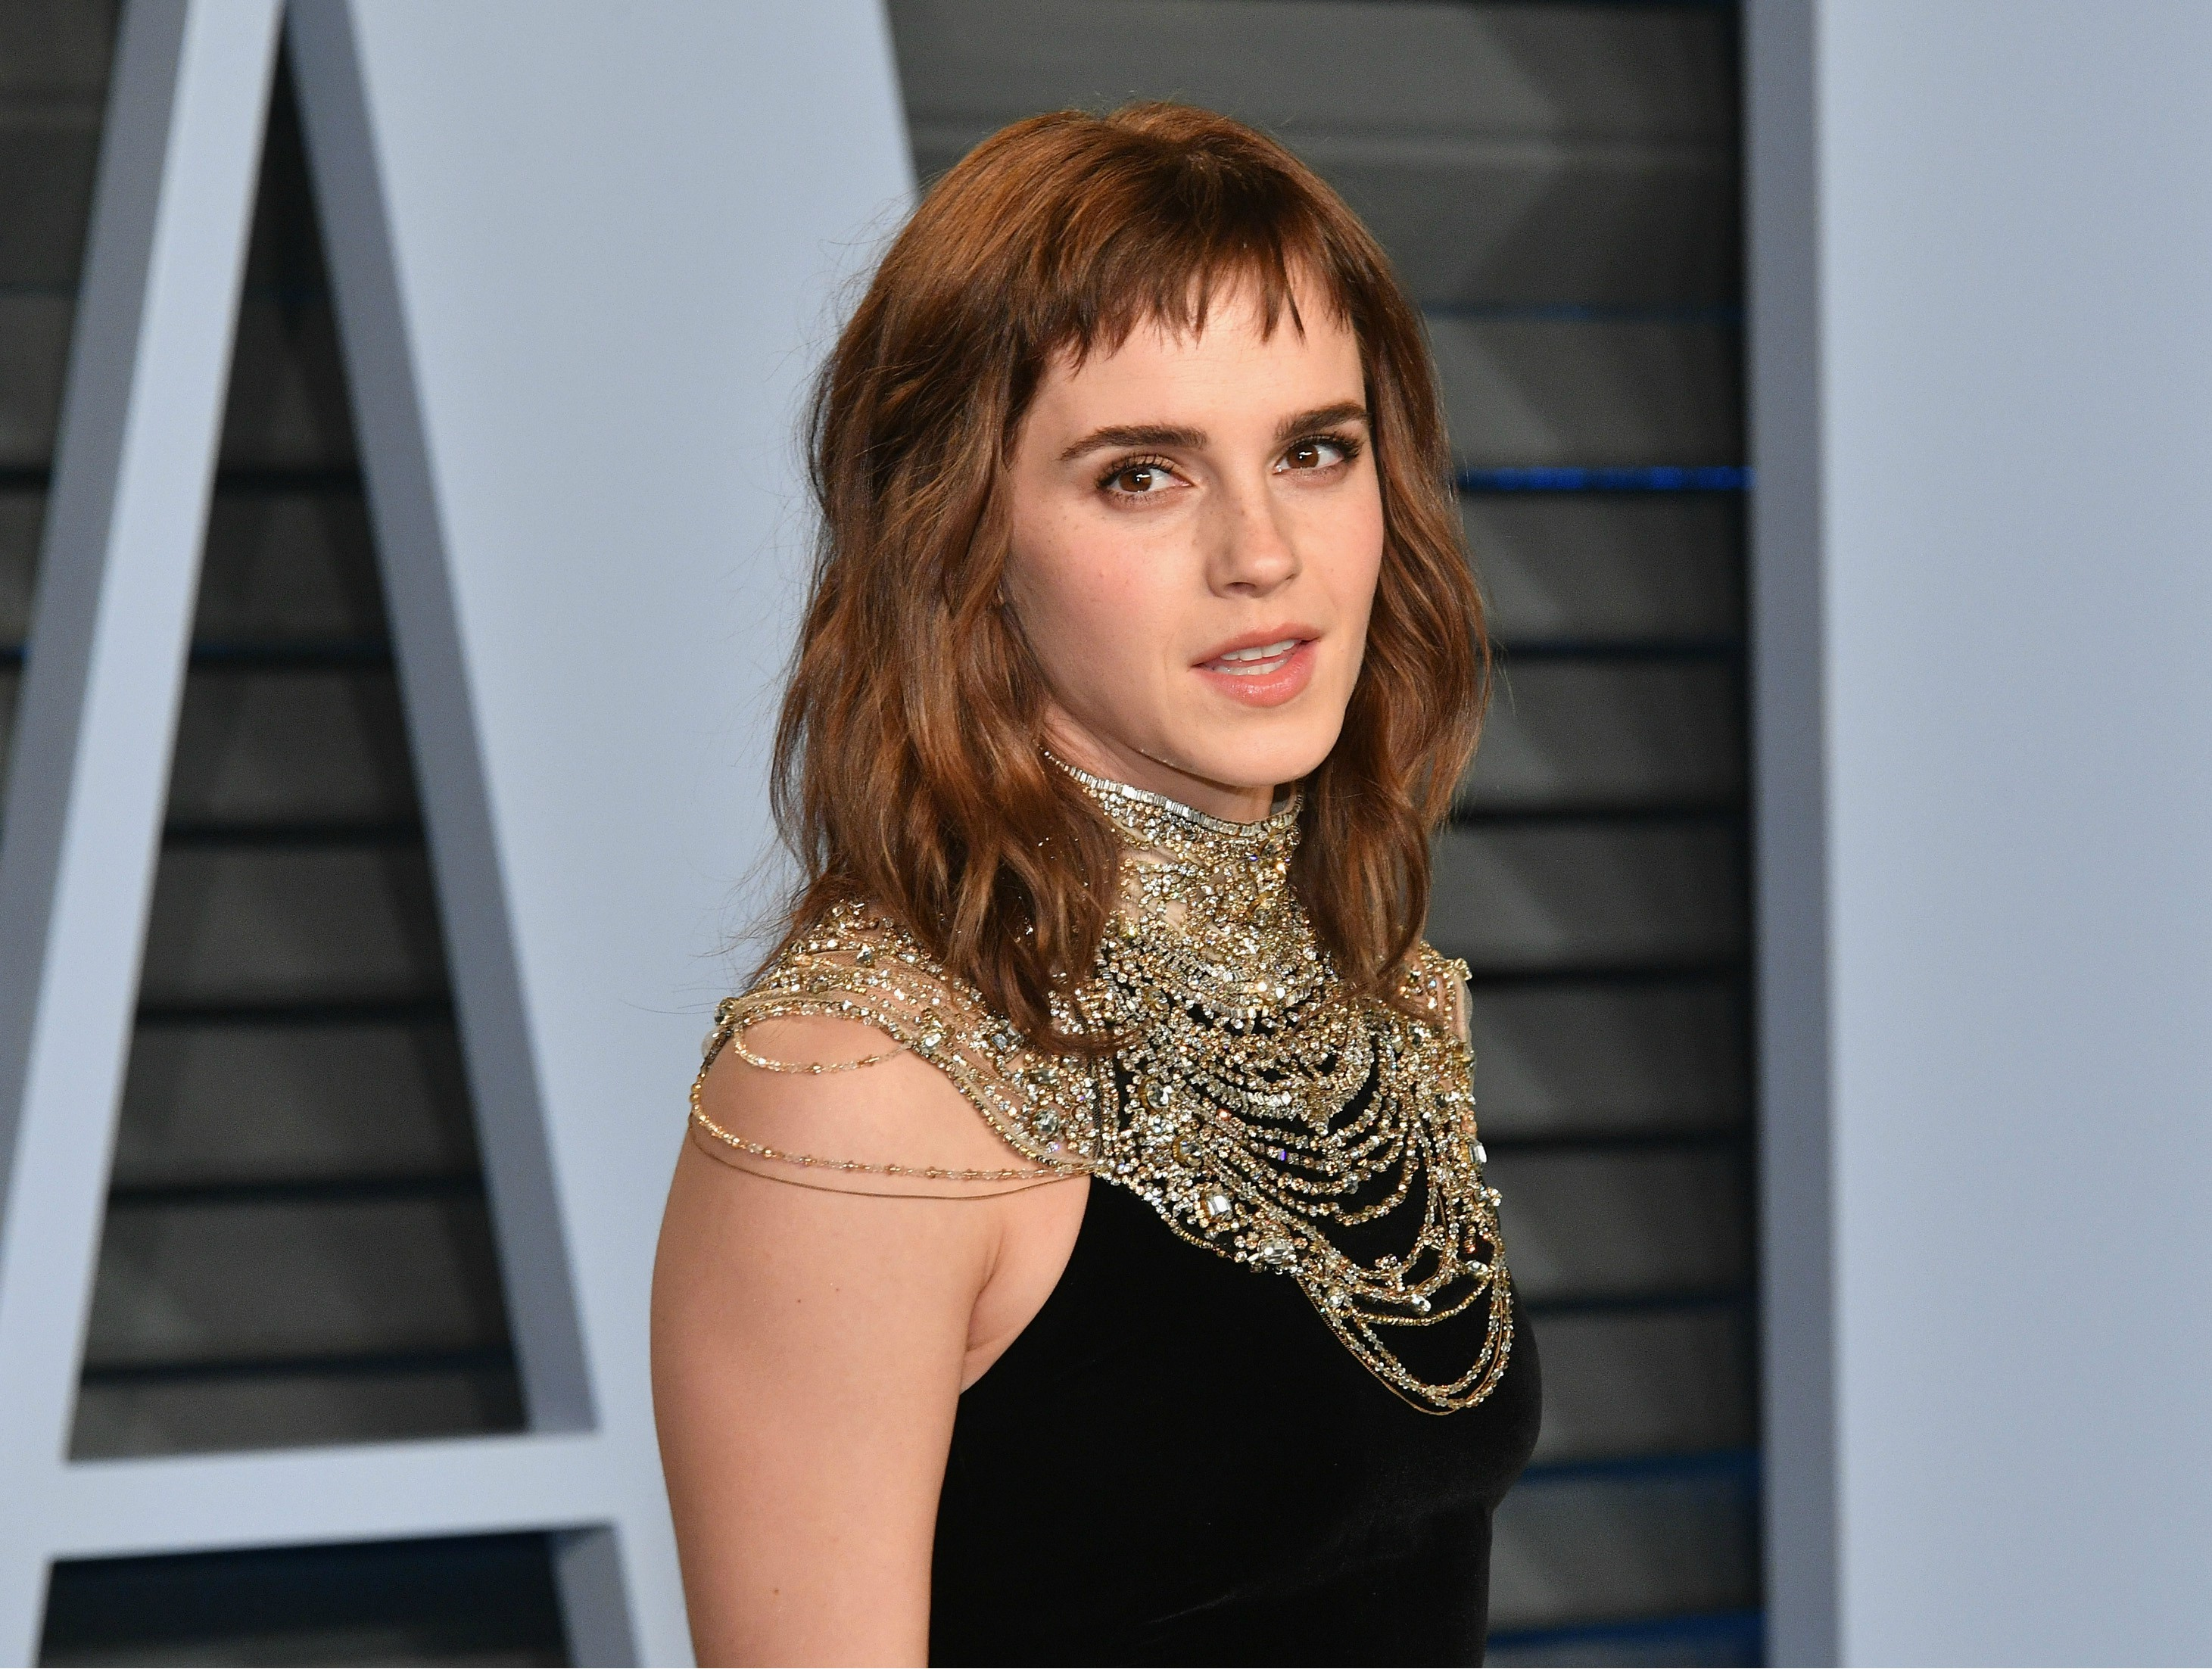 Emma Watson Had A Giant Time's Up Tattoo At The Oscars Afterparty